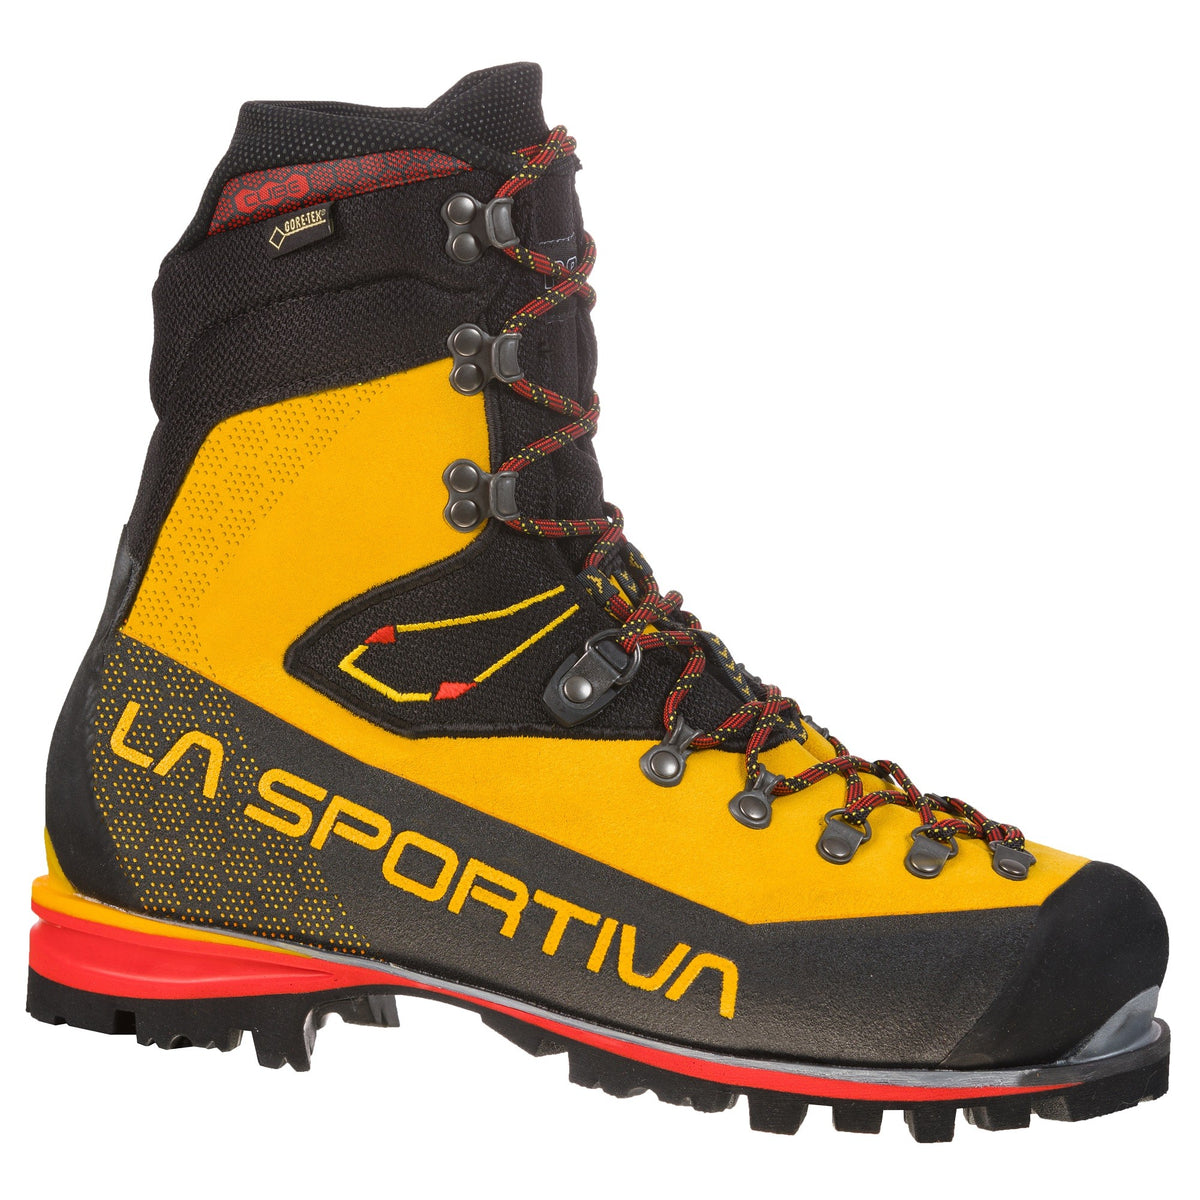 La Sportiva Nepal Cube GTX in Yellow, Black and Red